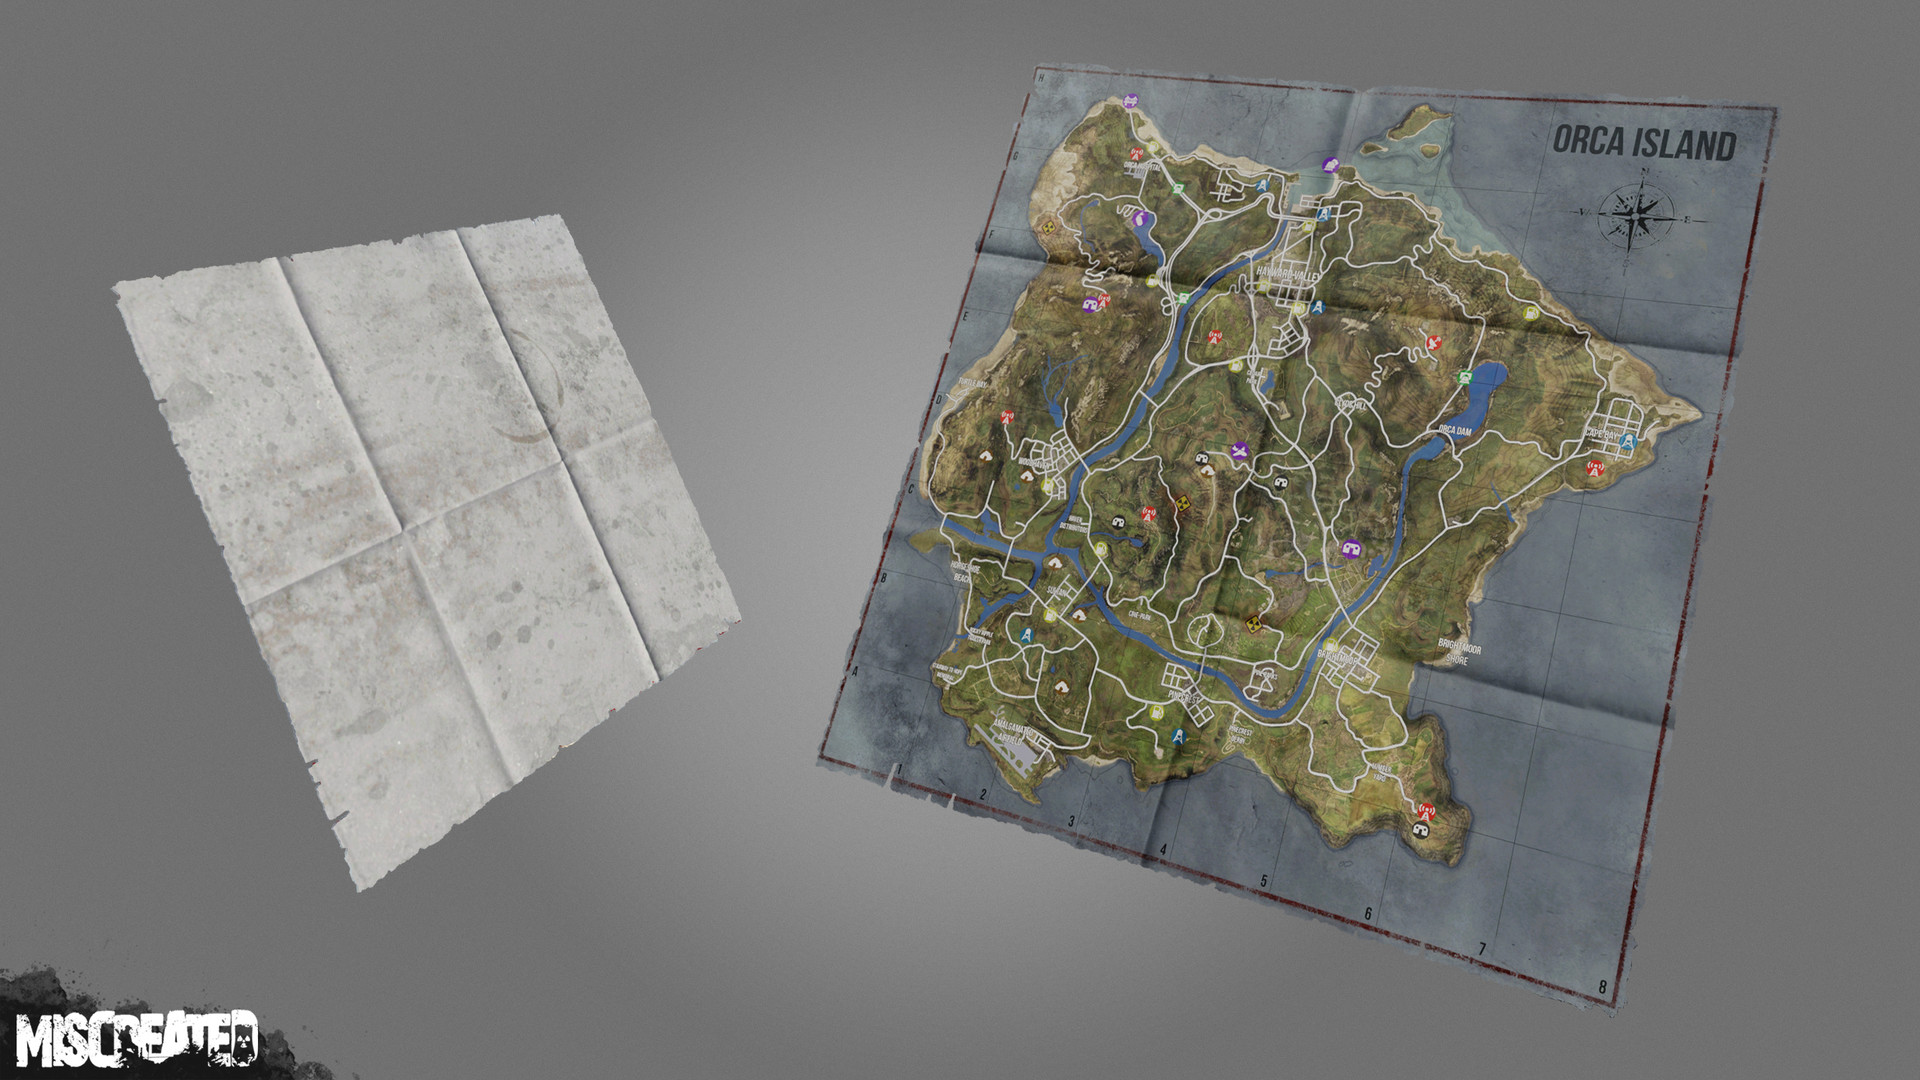 Map Item carried by the player